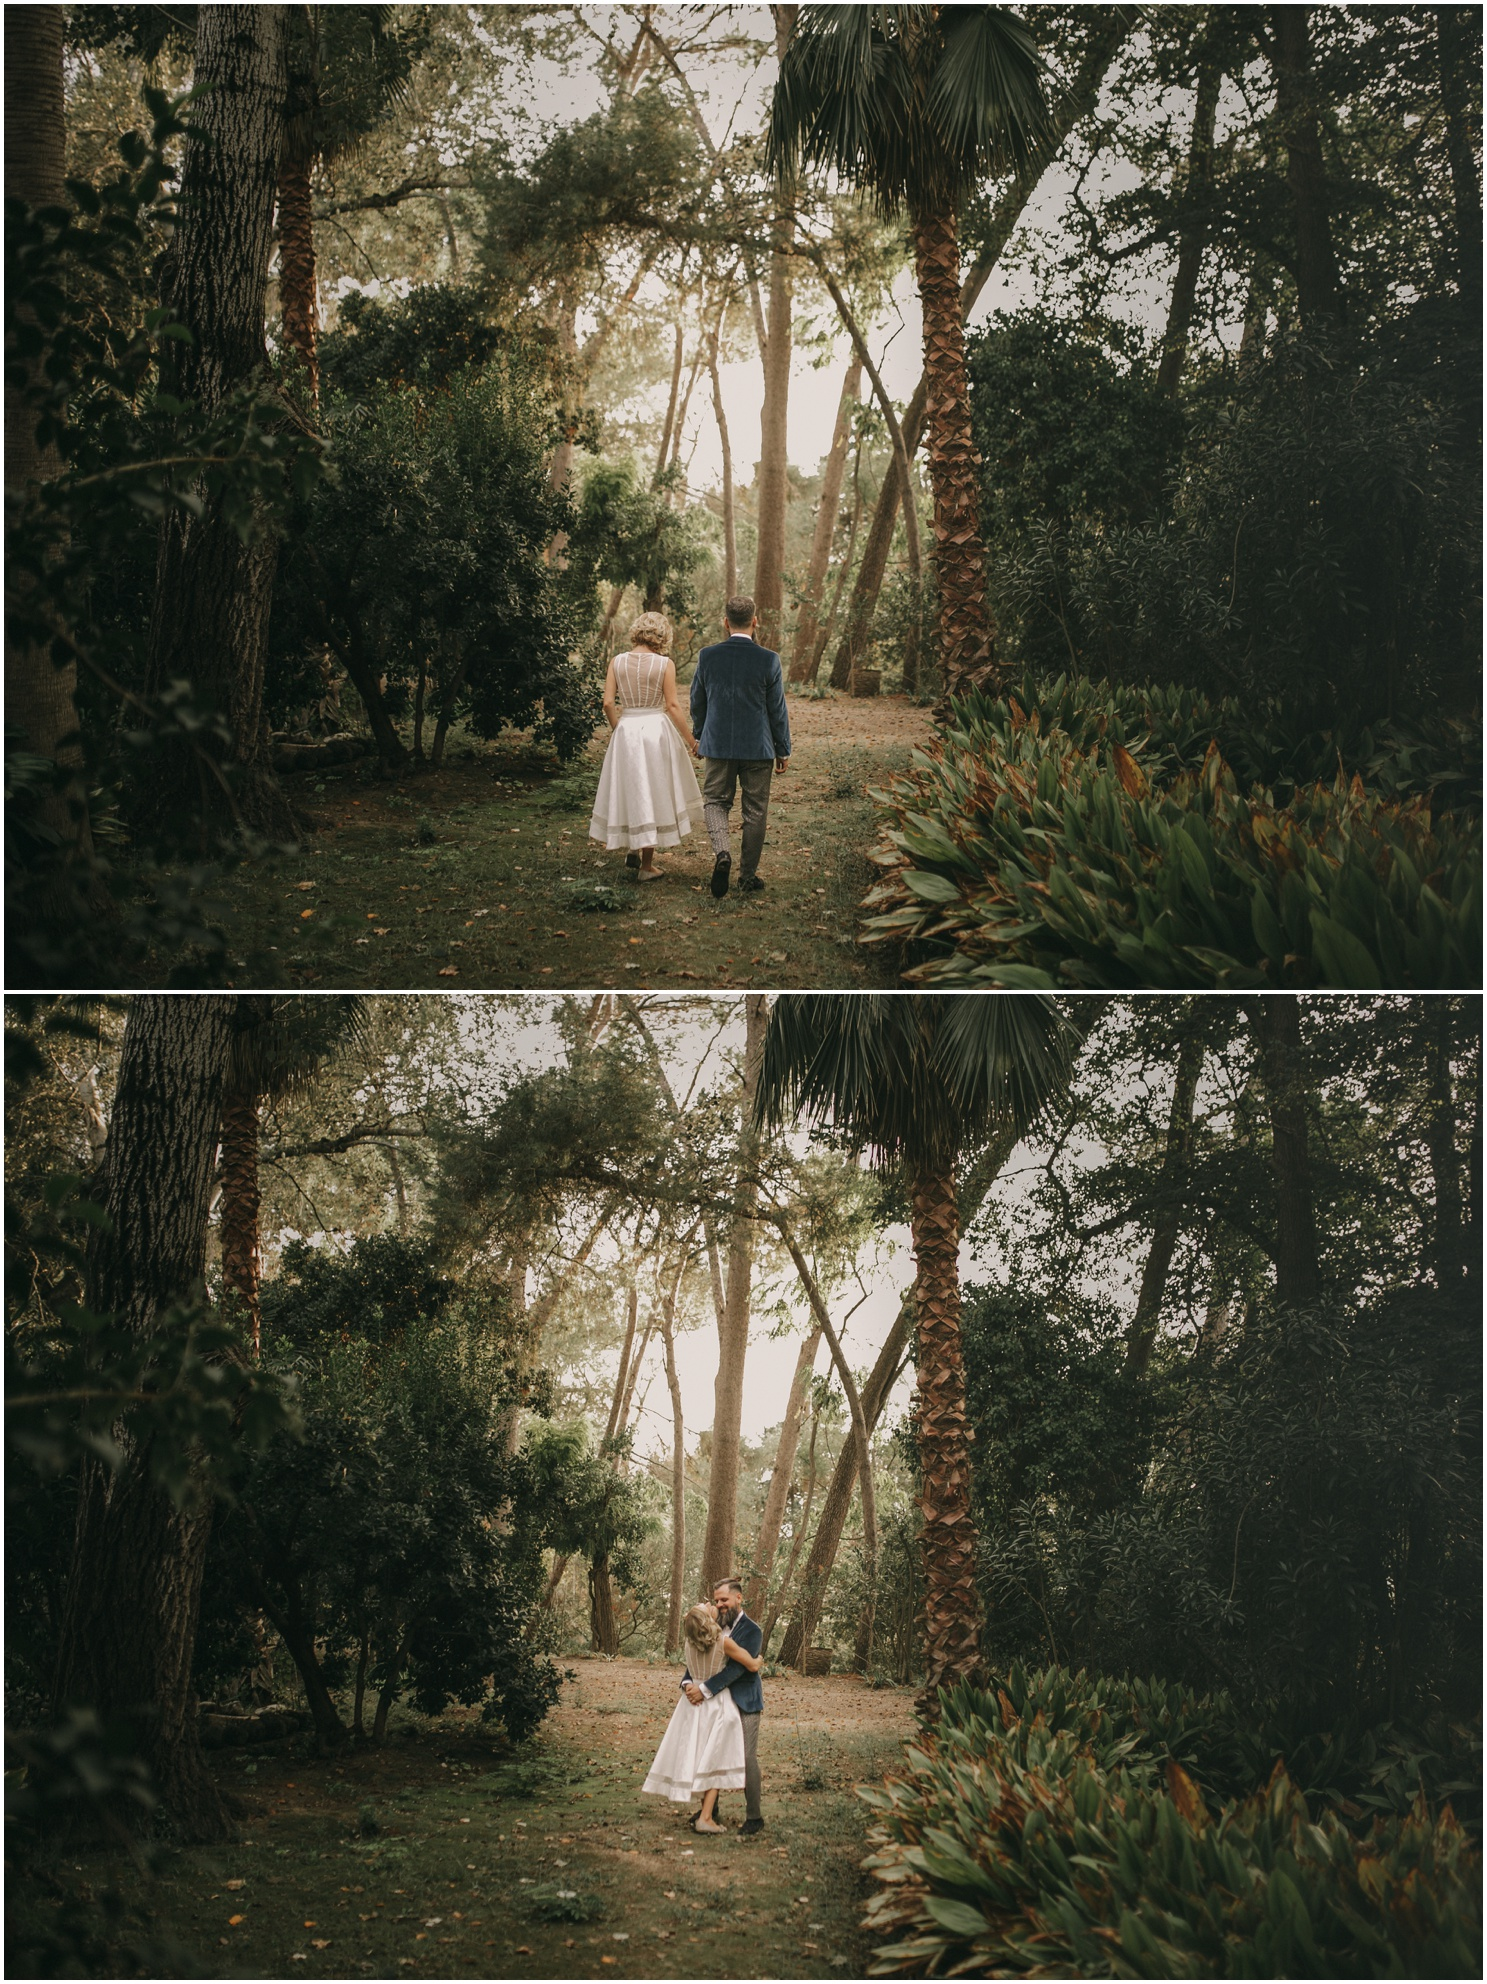 Pablo Laguia wedding photographer -109.jpg